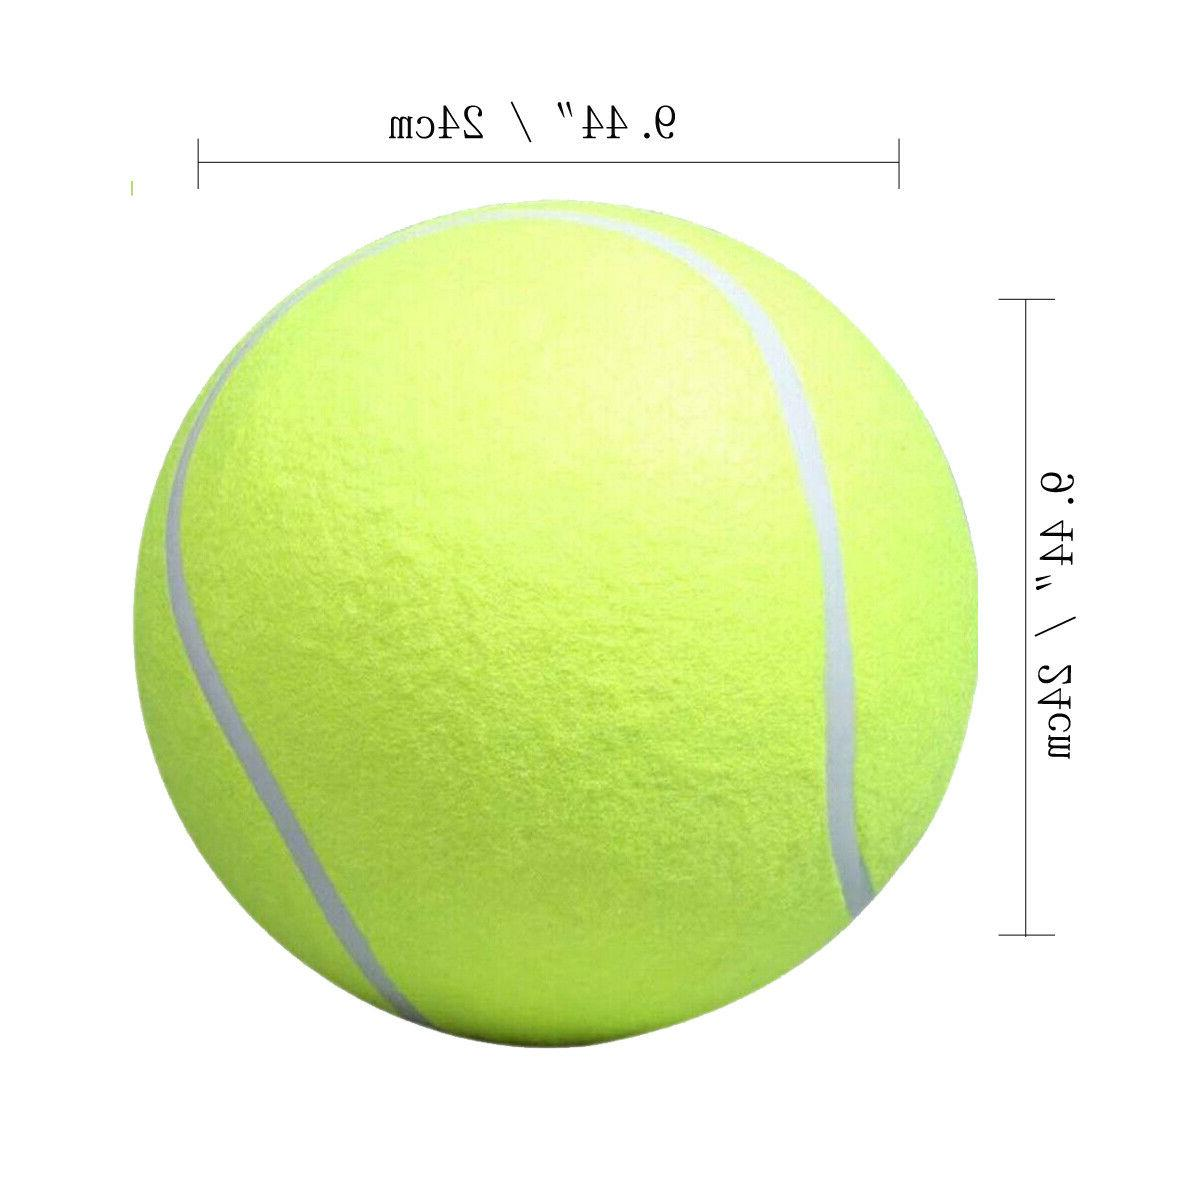 """9.5"""" Large Tennis Thrower Chucker Launcher Play Toy Size"""